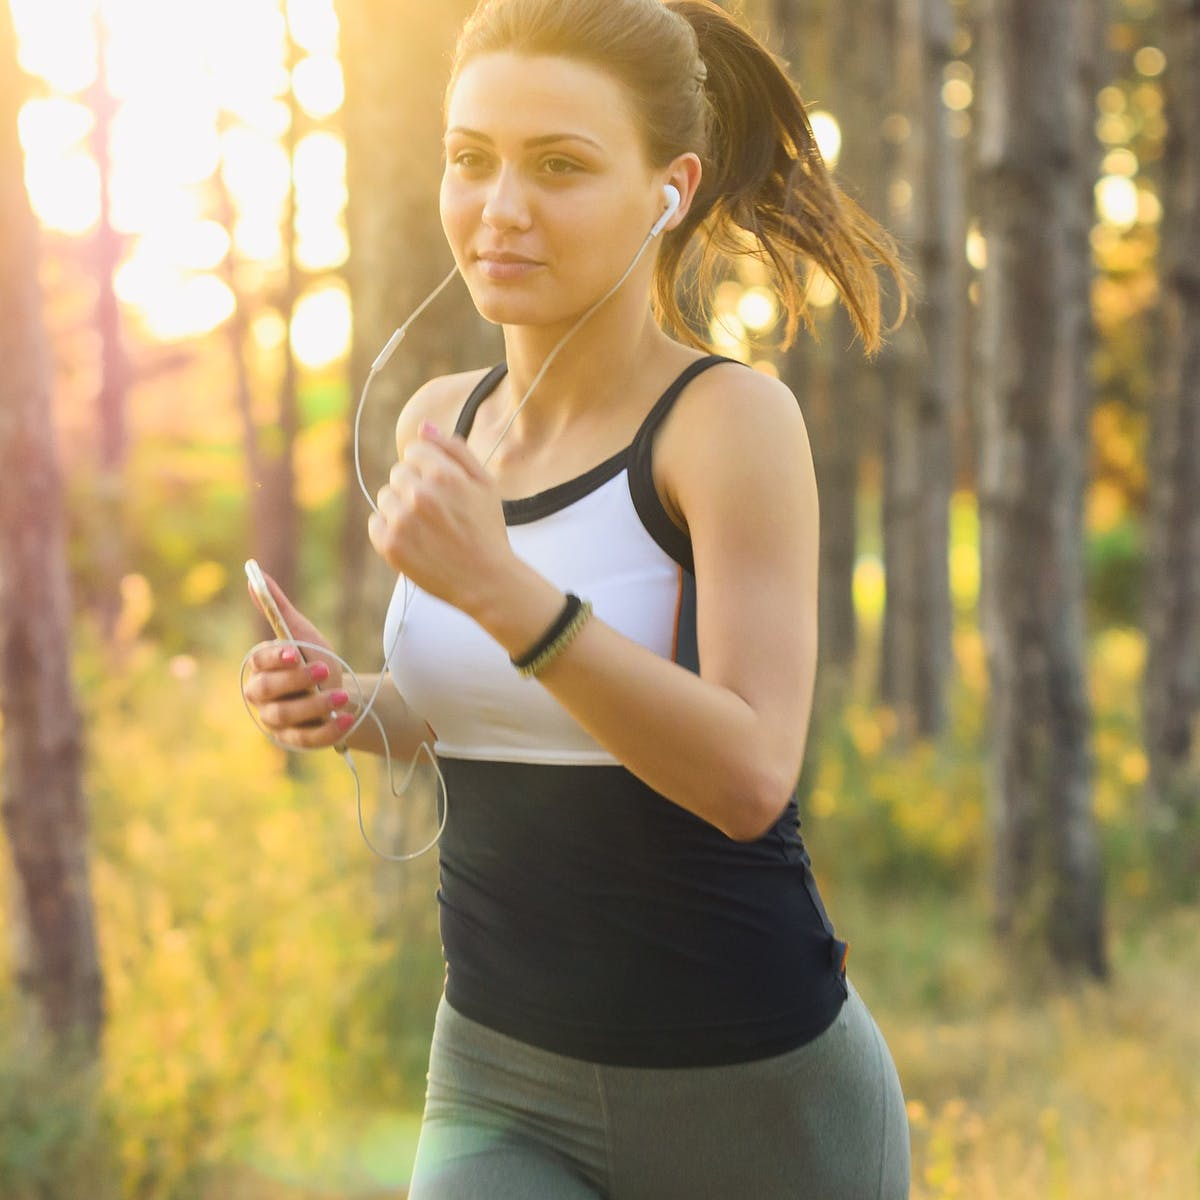 How Much Should I Exercise? 3 Easy Activities Only Take 10 Minutes a Week